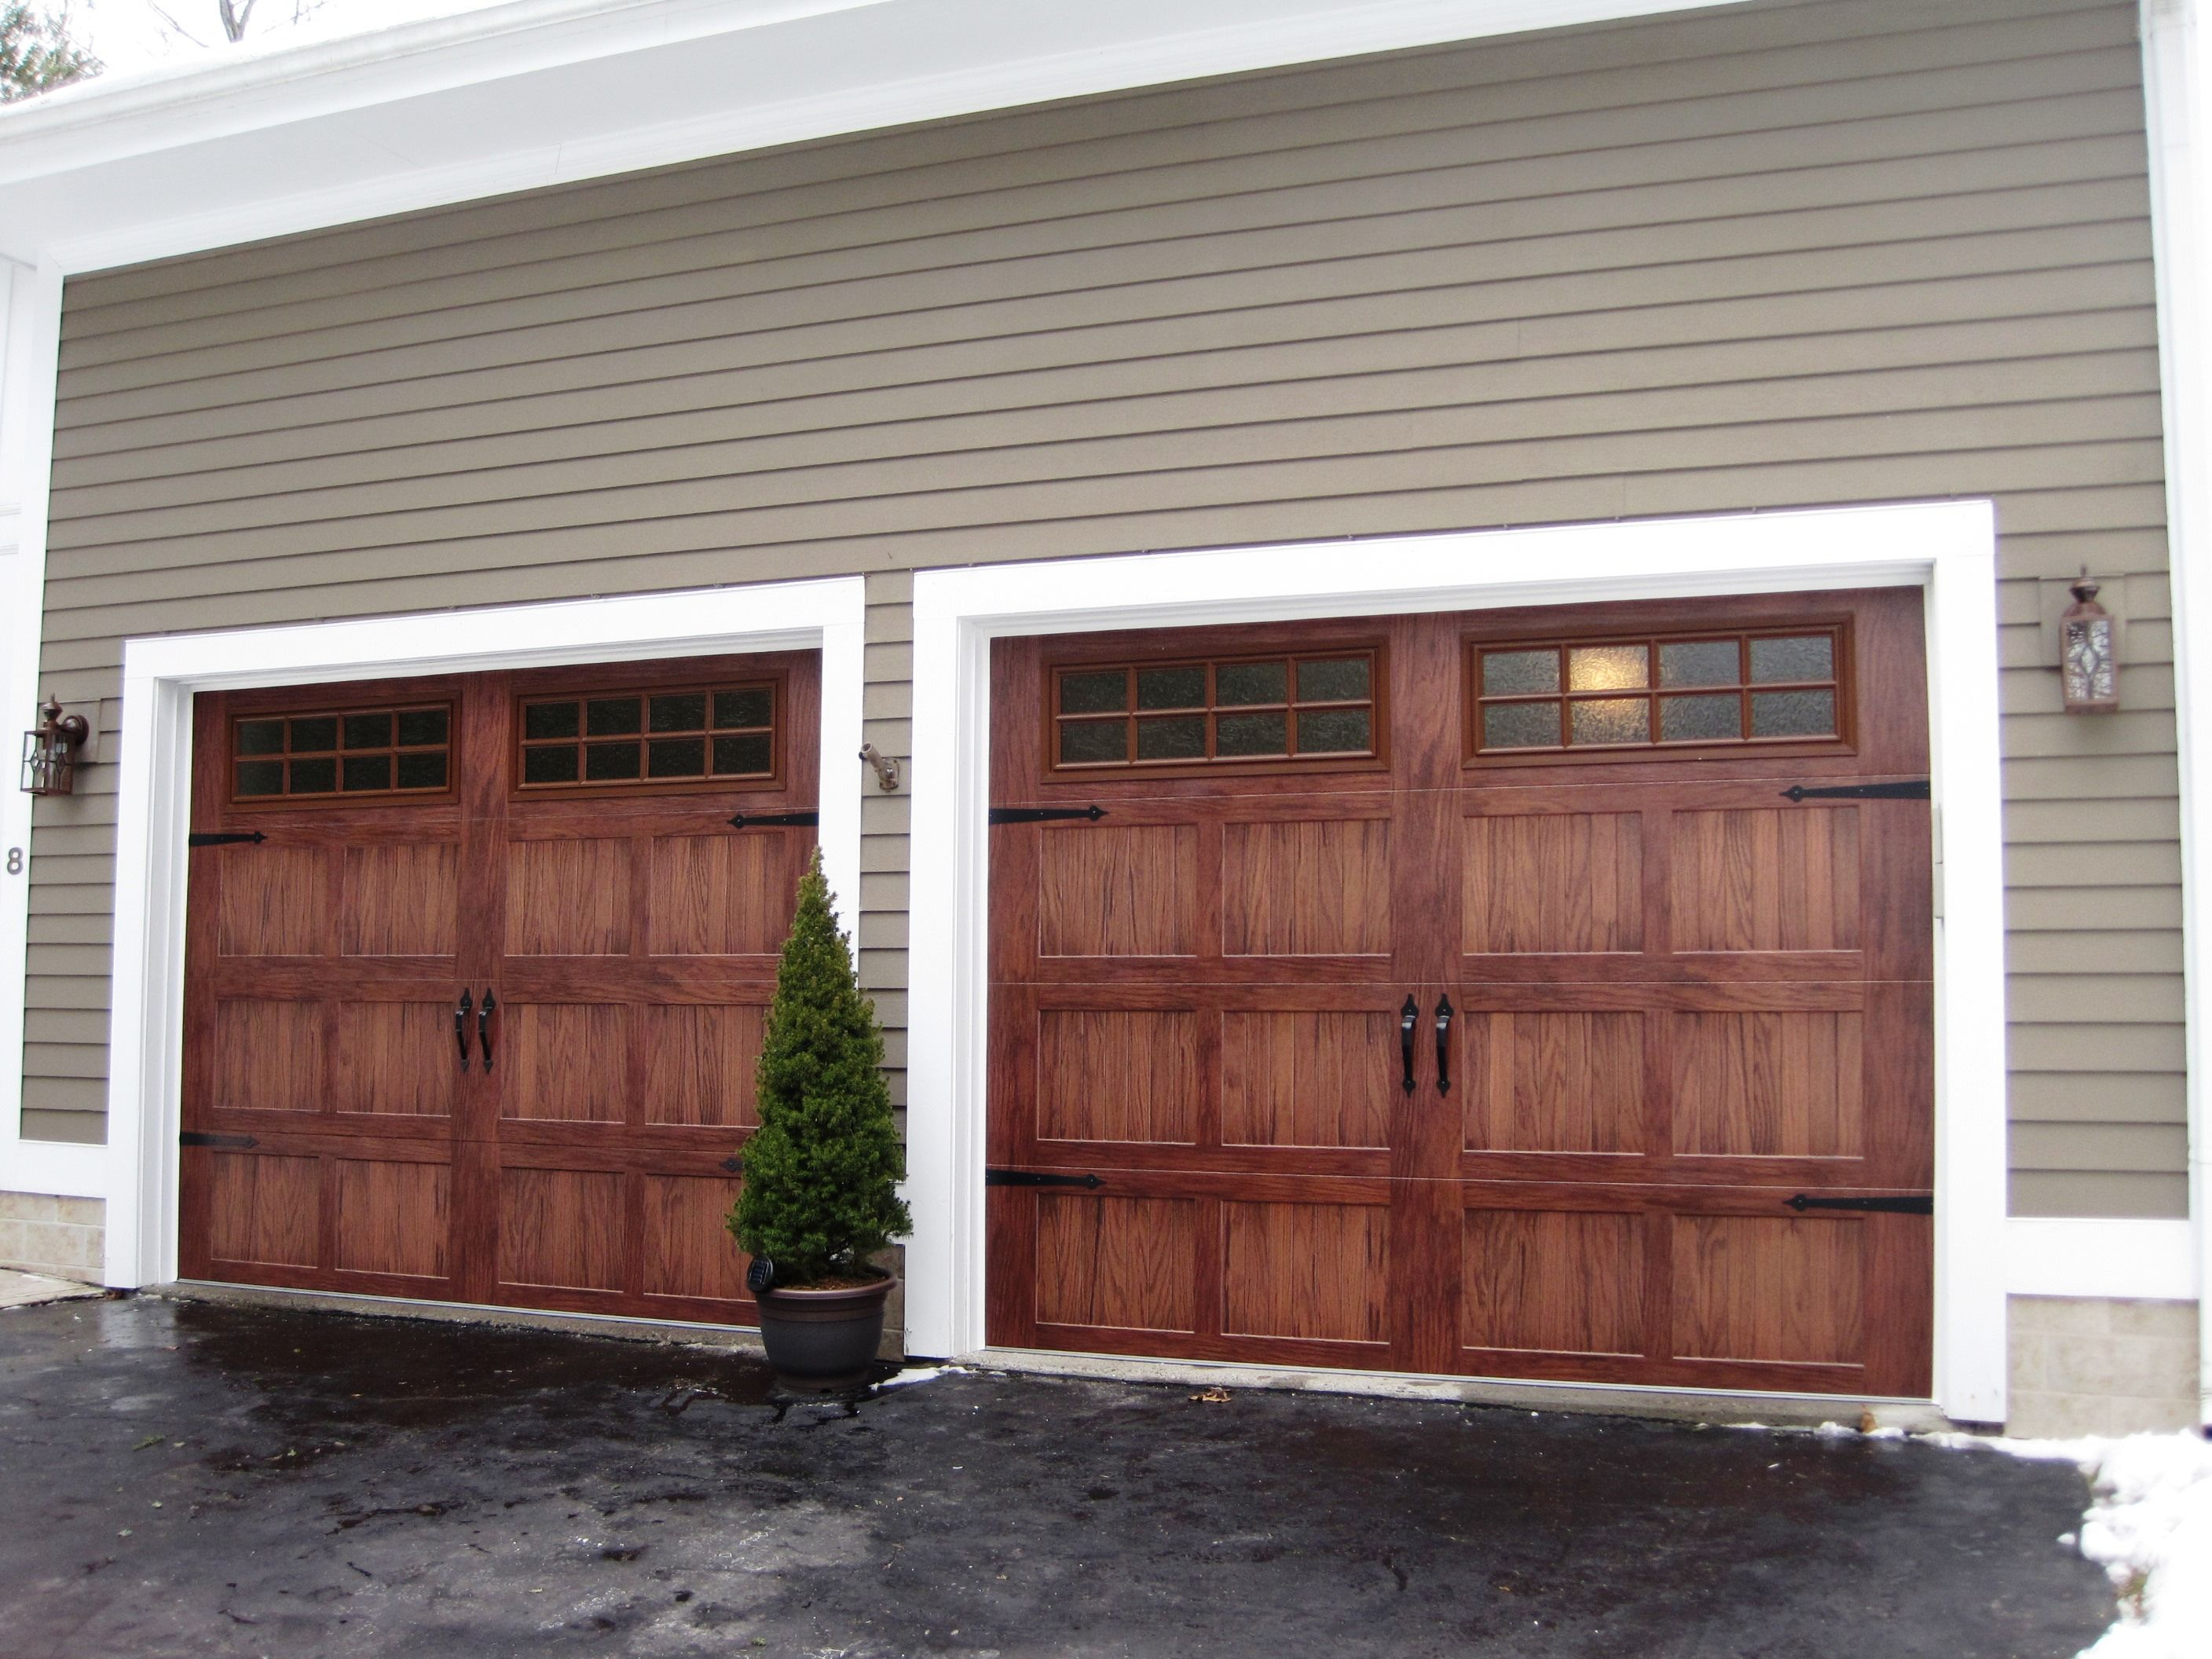 Metal Garage Doors That Look Like Wood For Our Barn Accents pertaining to sizing 2816 X 2112